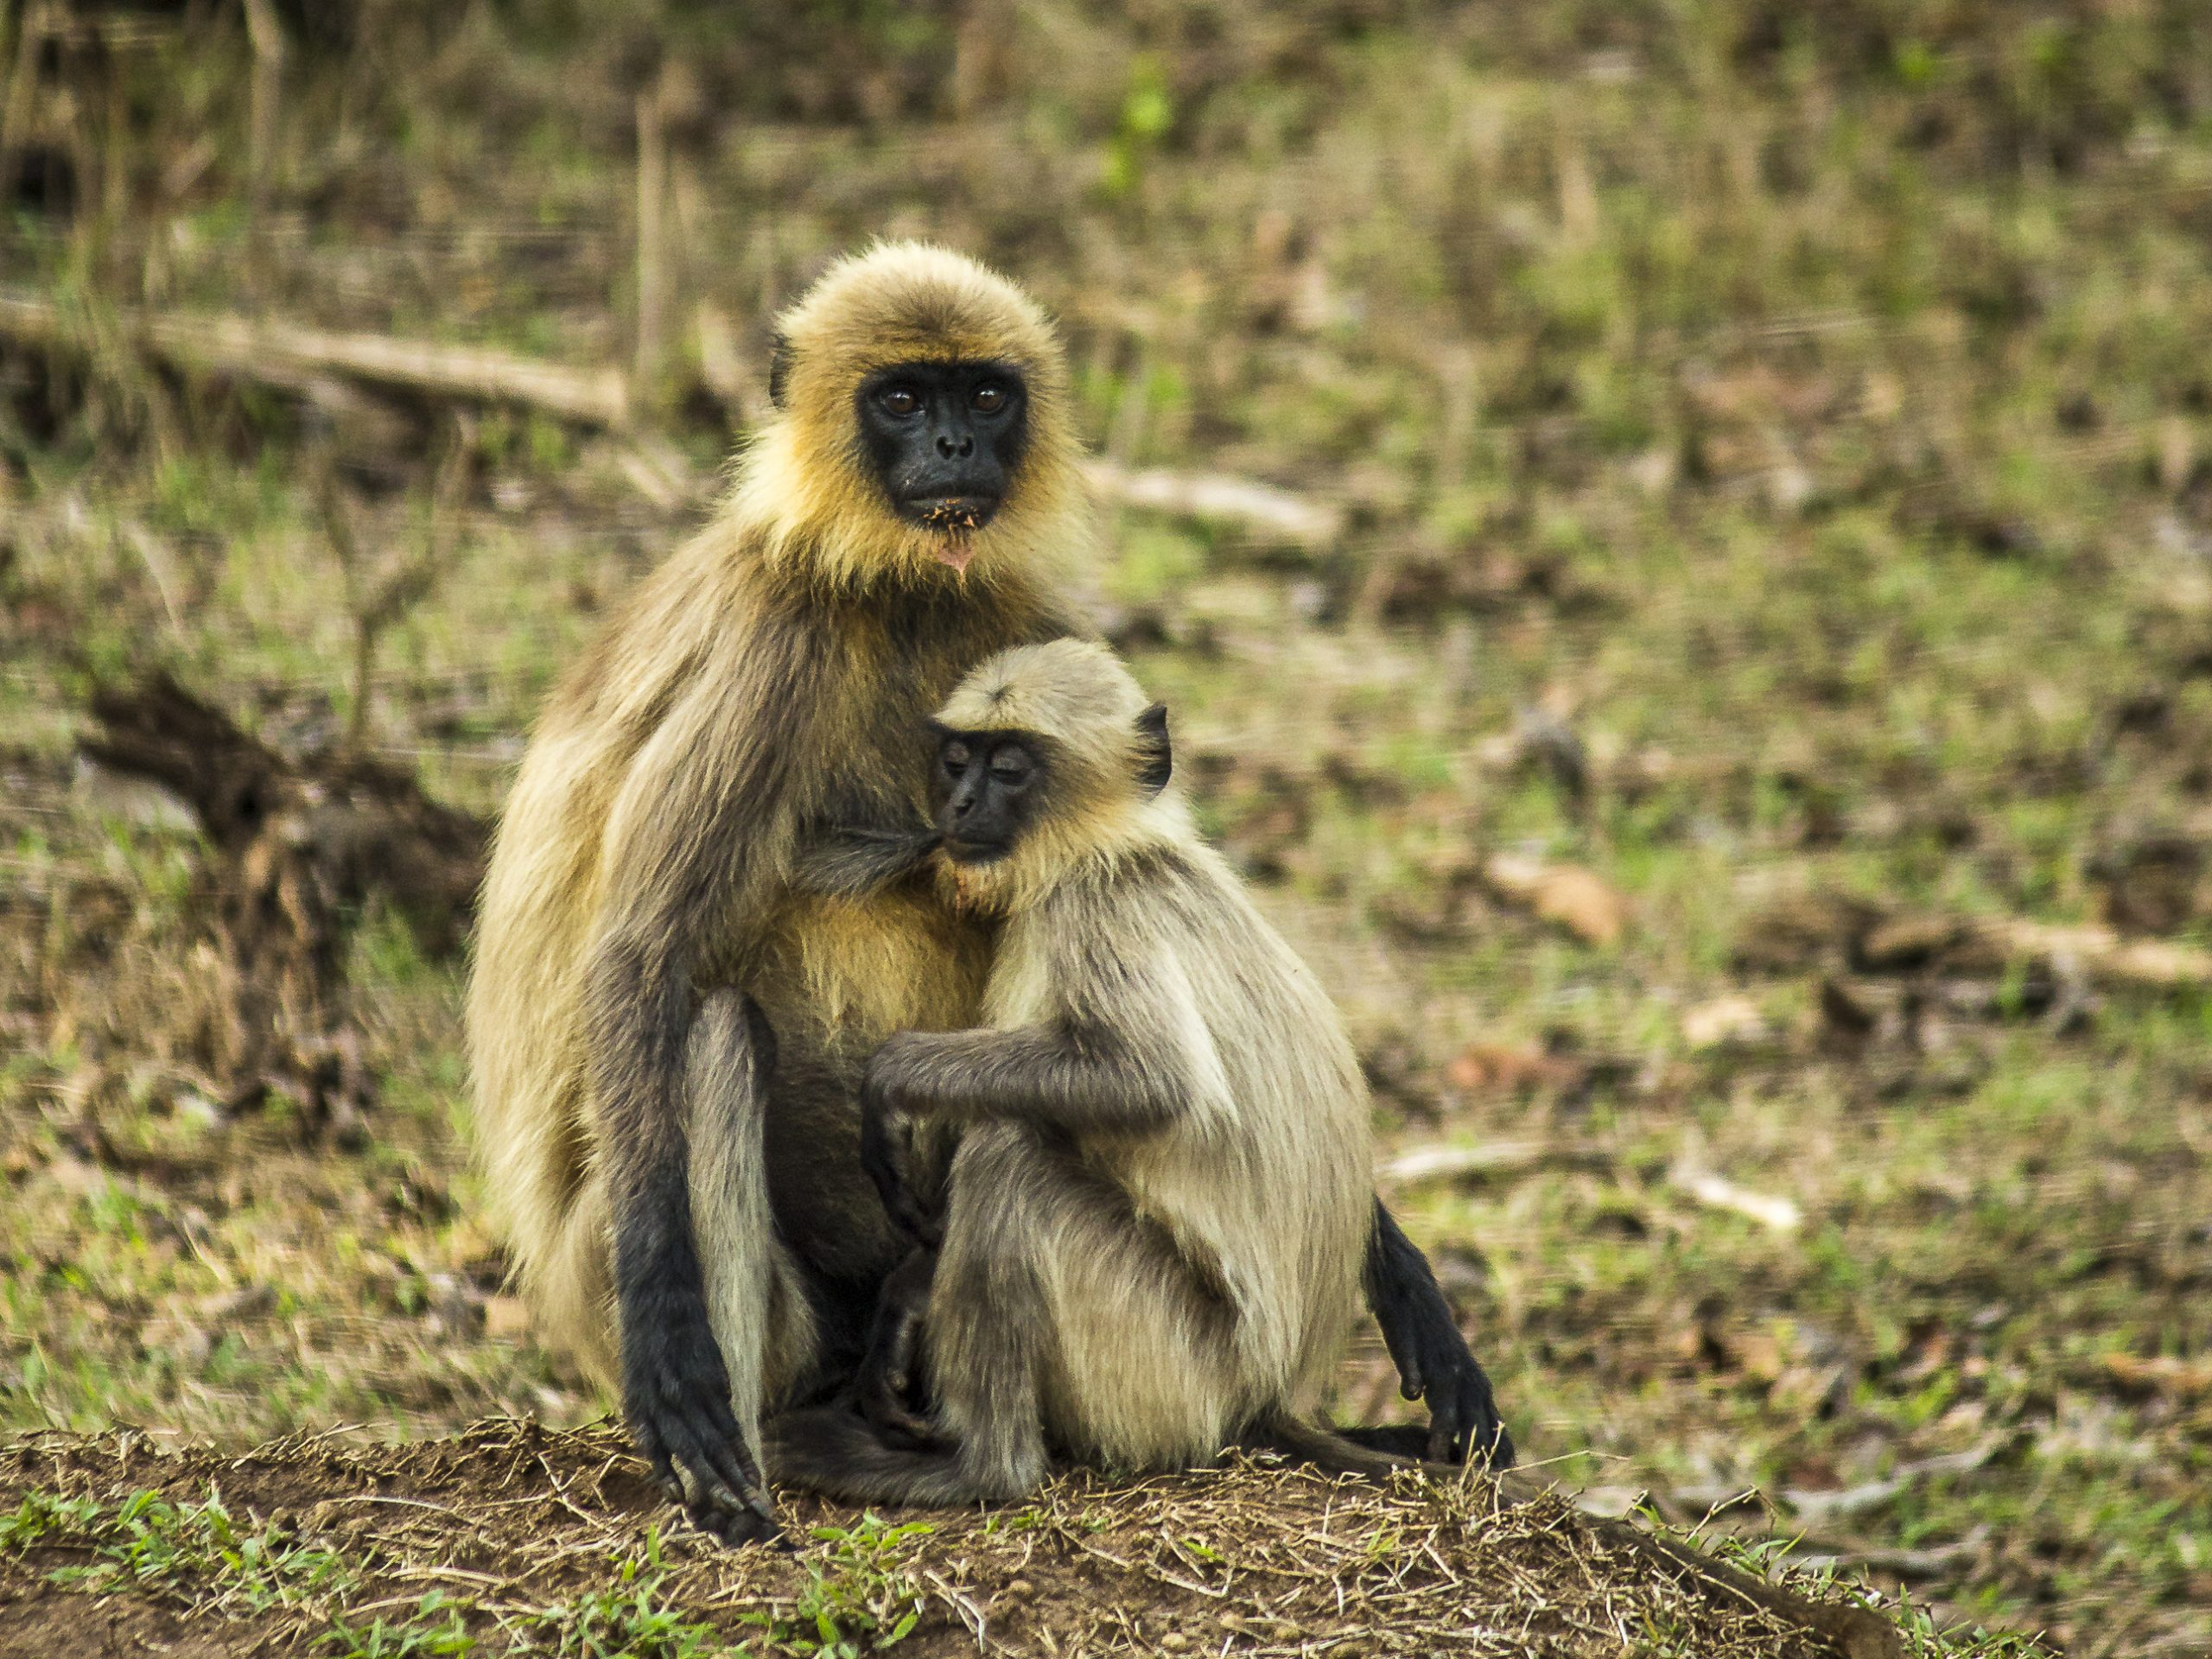 A gray langur with baby langur